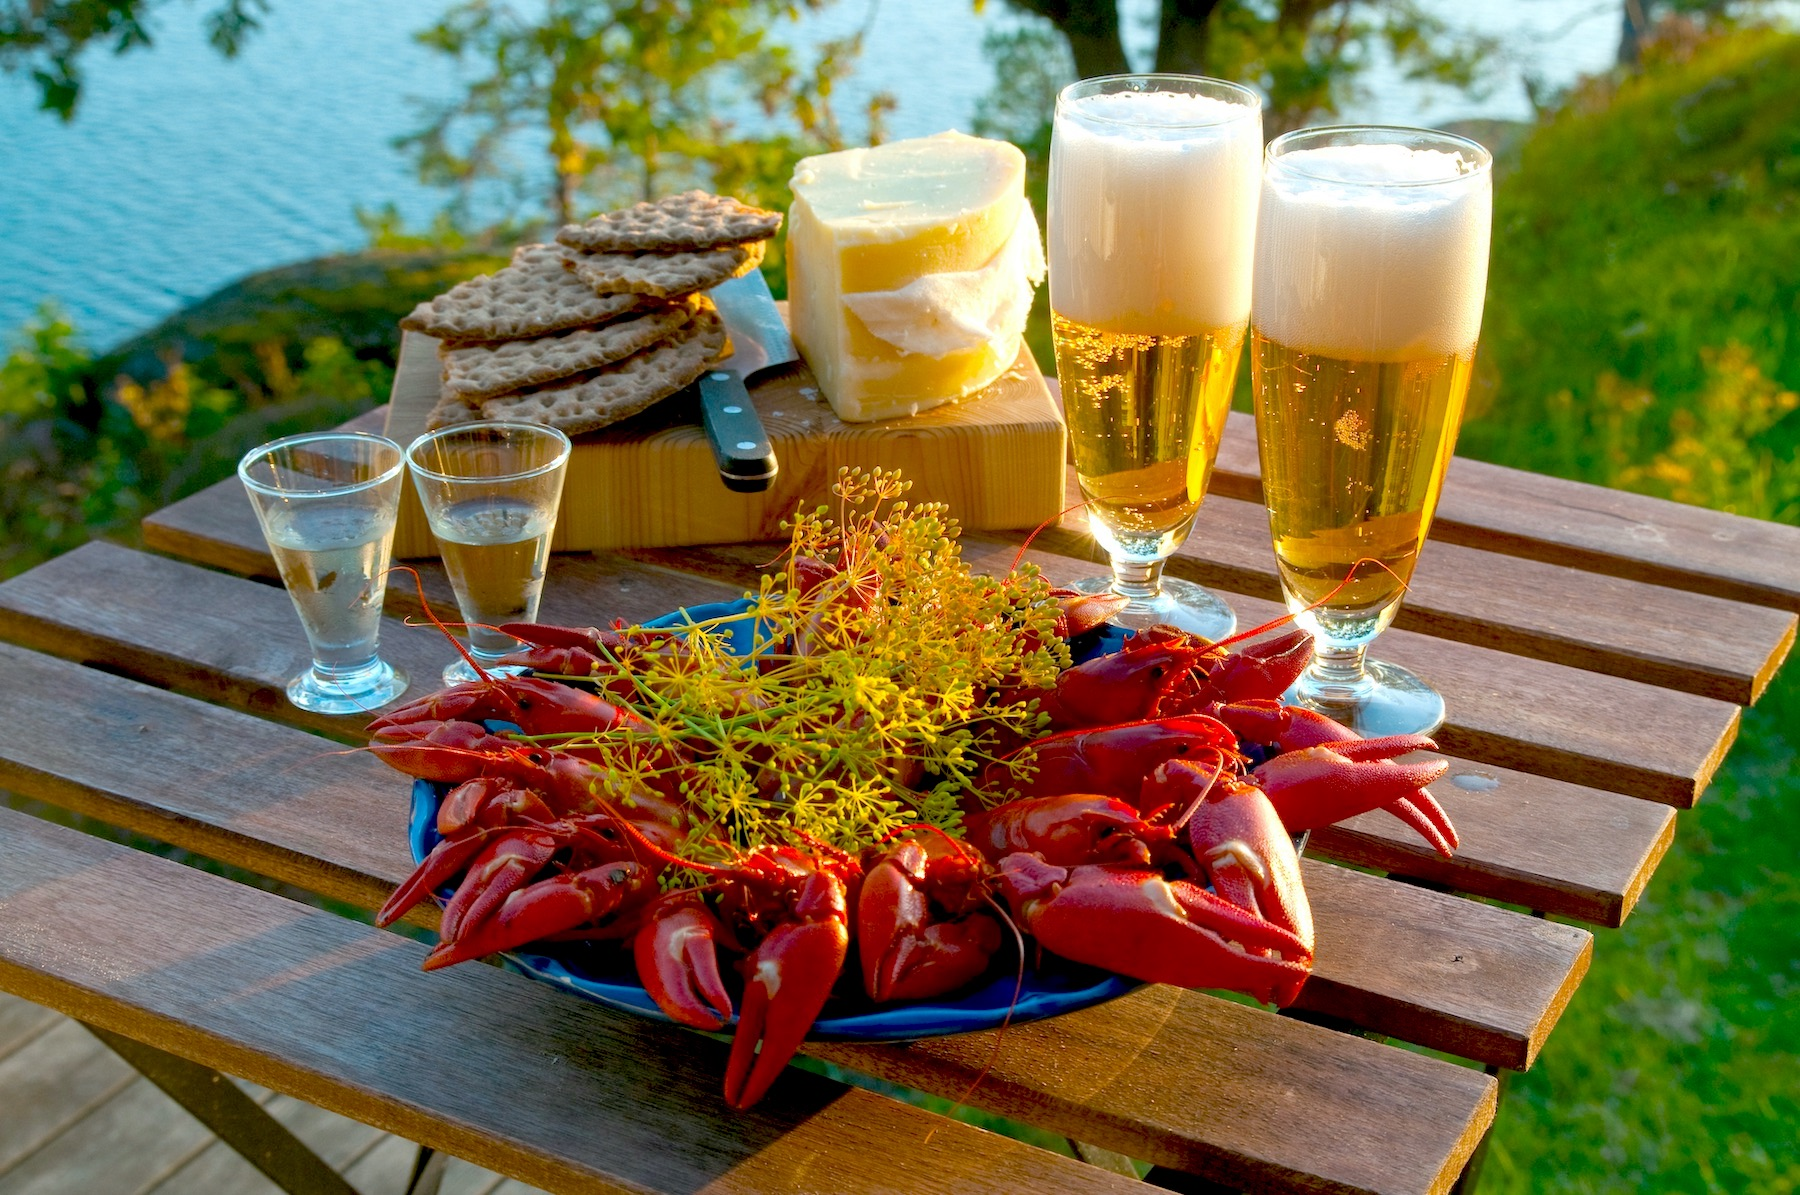 Crayfish, beer, and crackers on a table outside